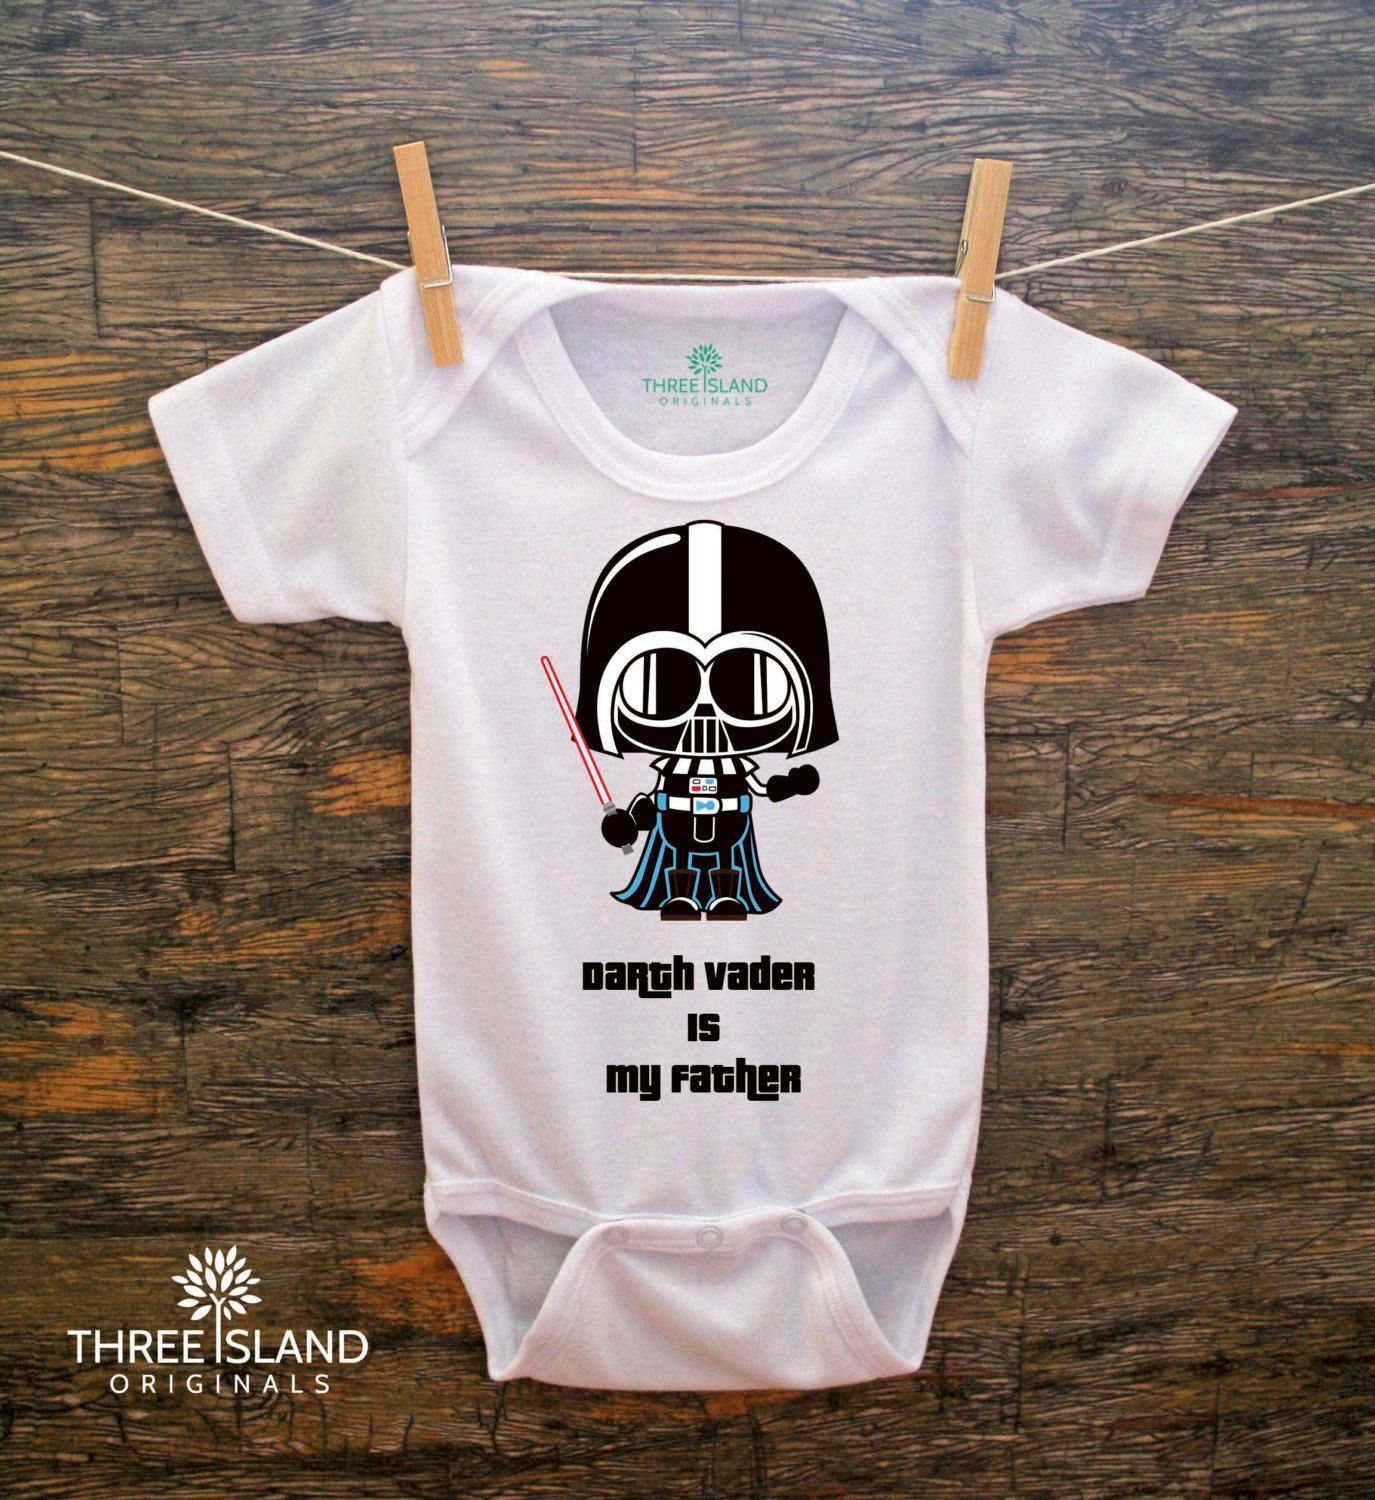 Cute And Funny Onesie For Baby Boy Or Girl